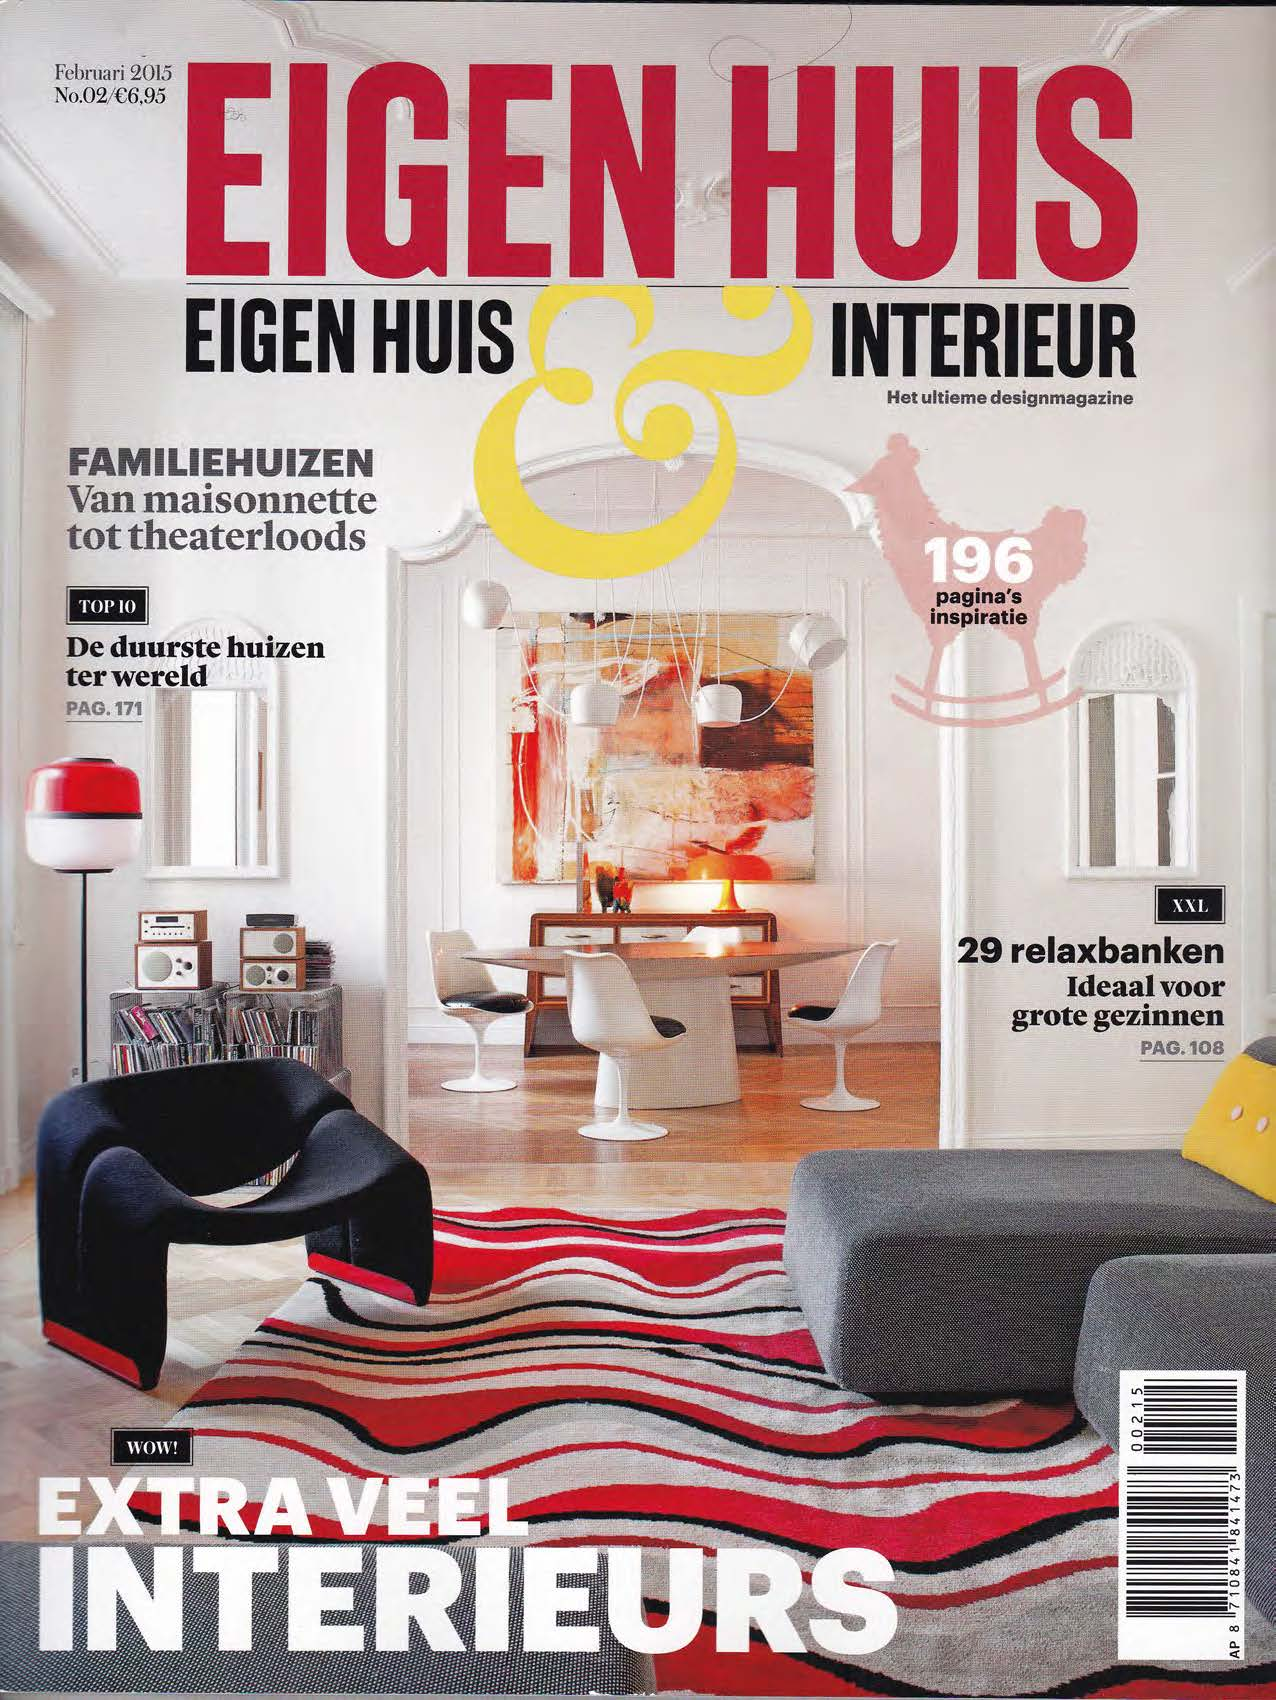 Suite wood eigen huis interieur feb 2015 for Abonnement eigen huis en interieur